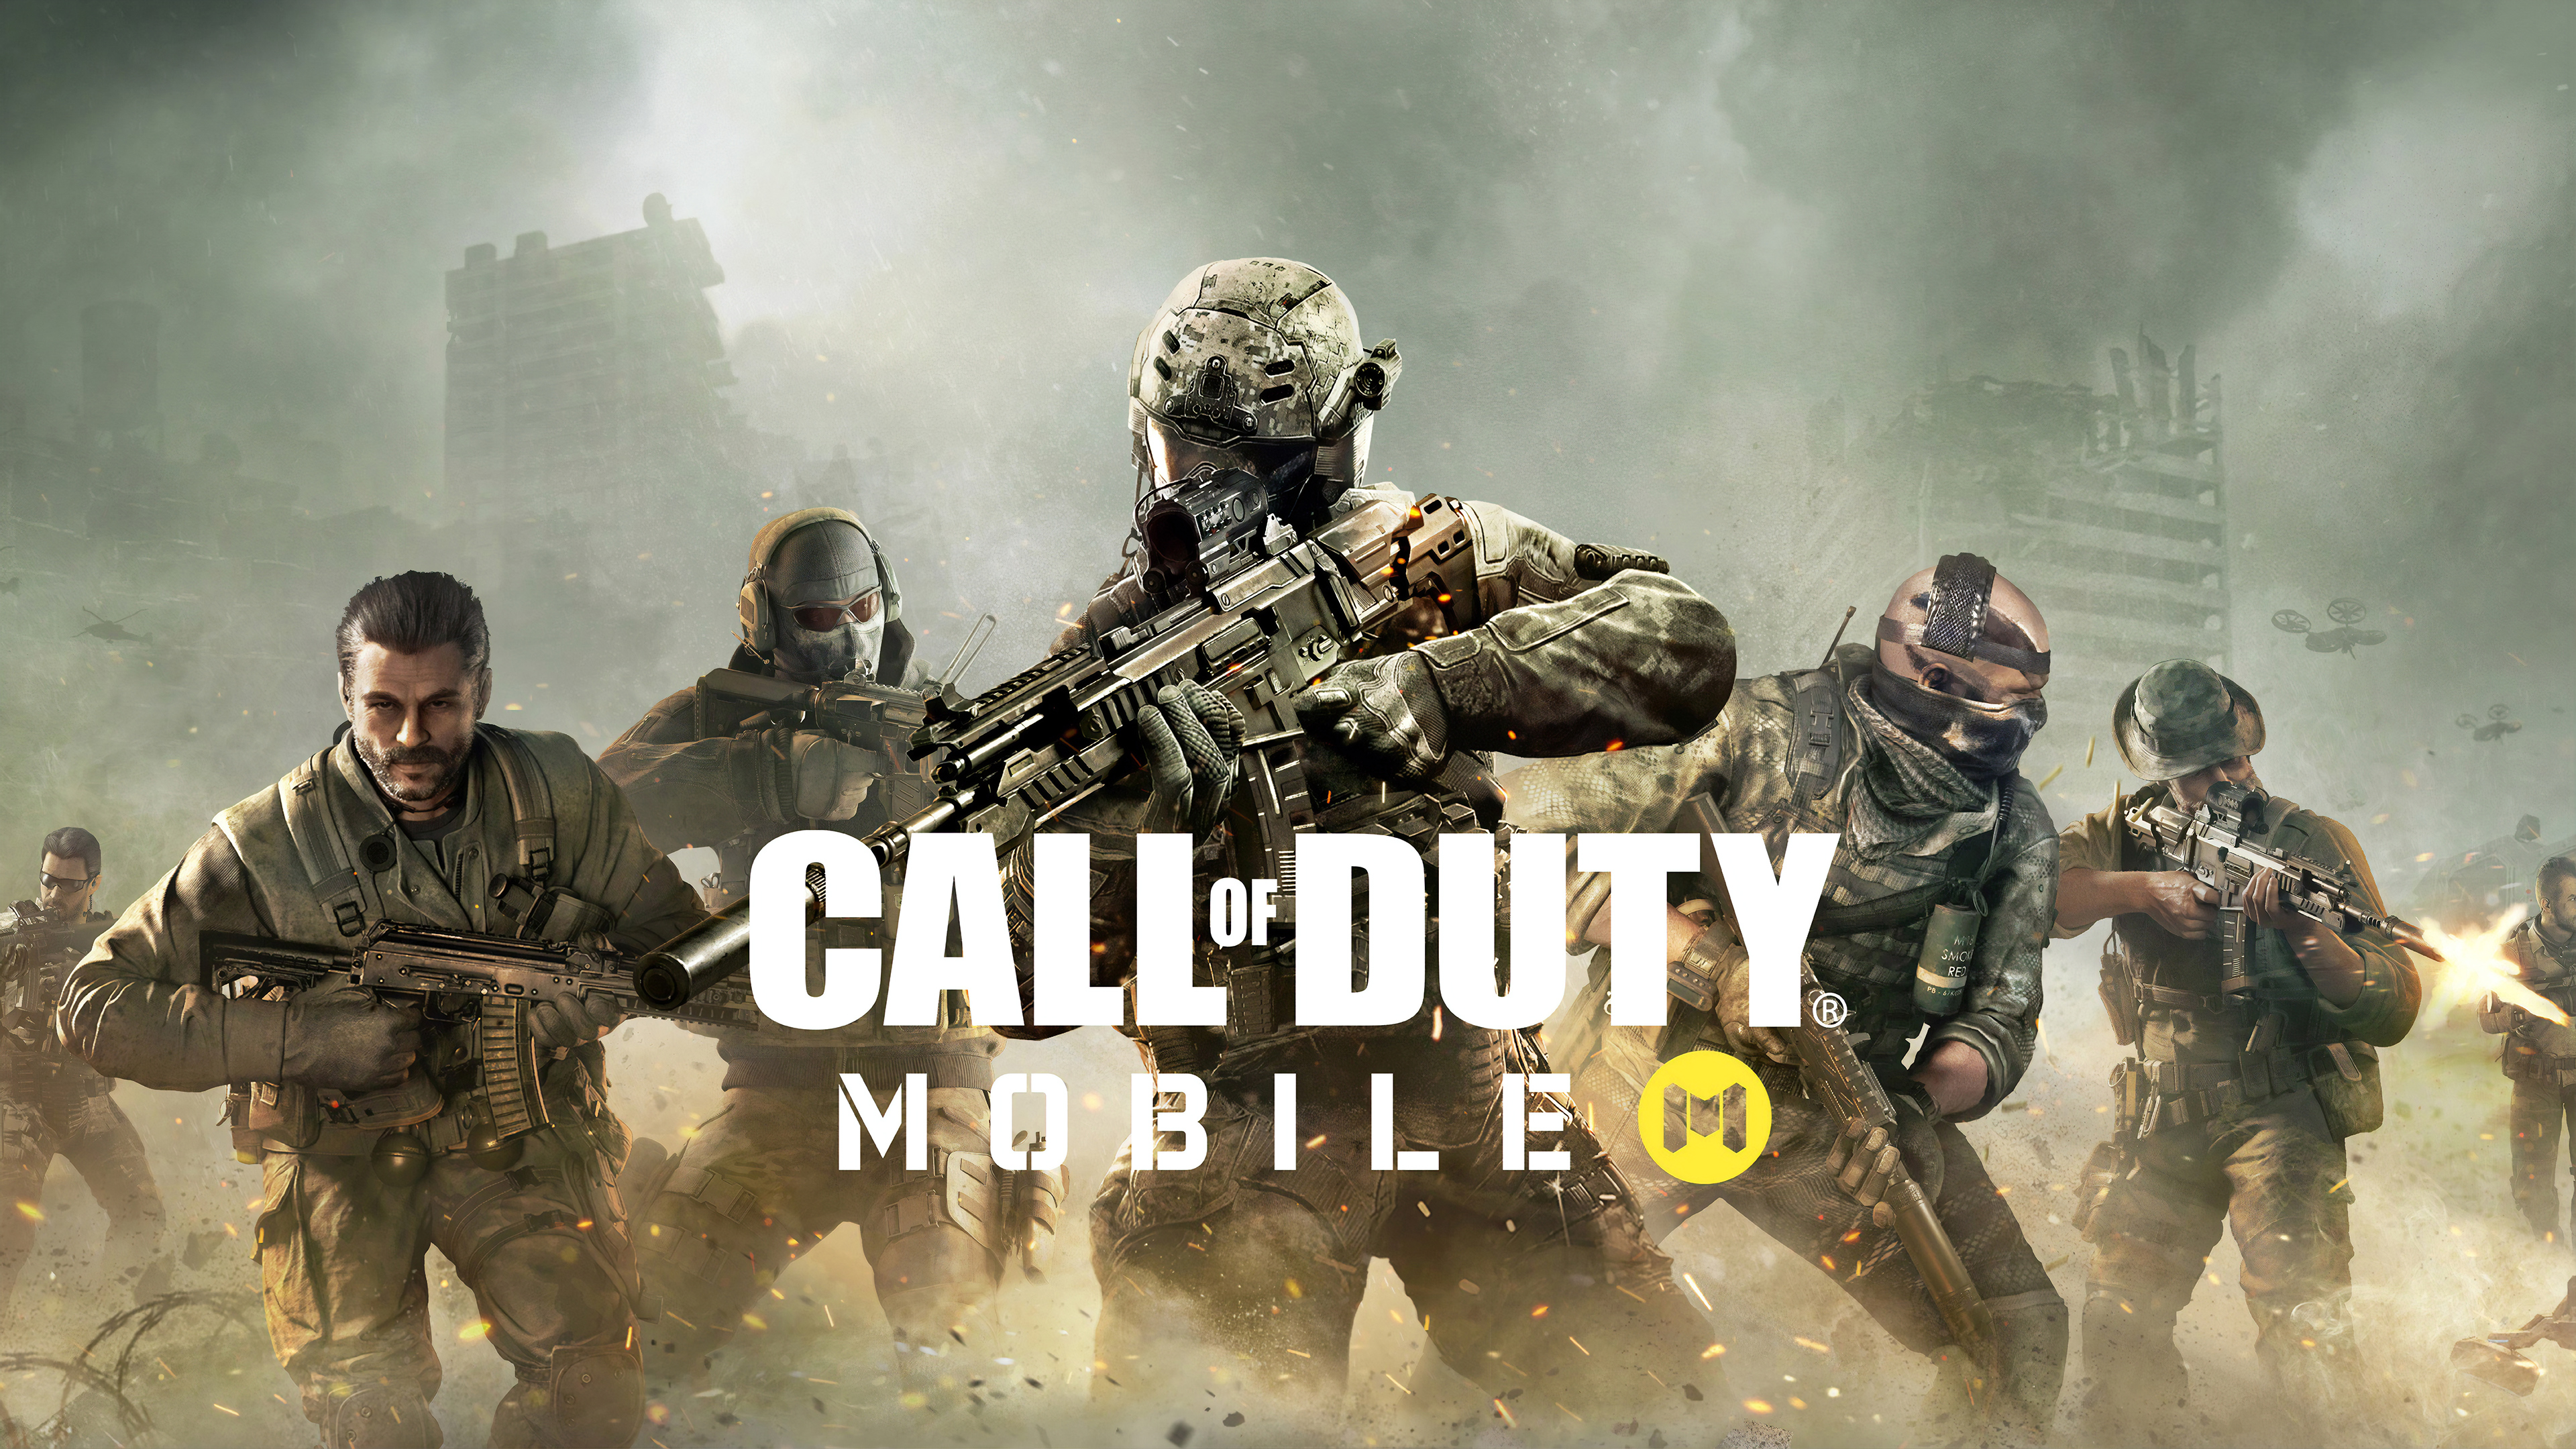 Call of Duty Mobile Game HD Wallpaper 4K for Desktop